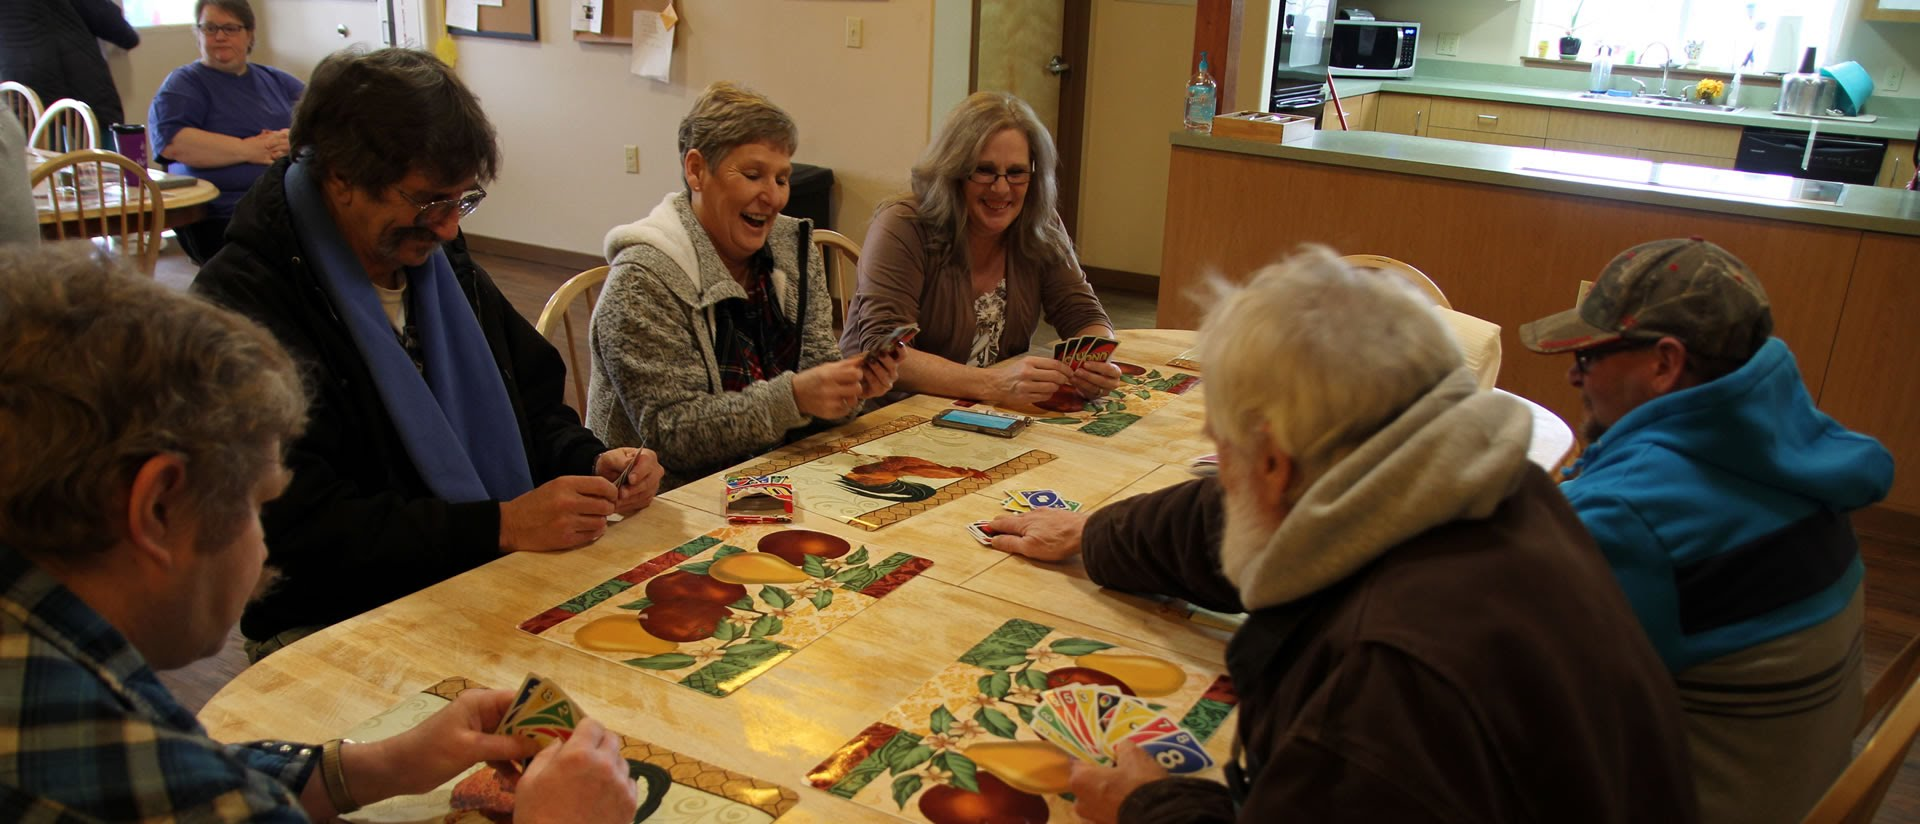 Residents and staff playings cards in Harmony House III kitchen